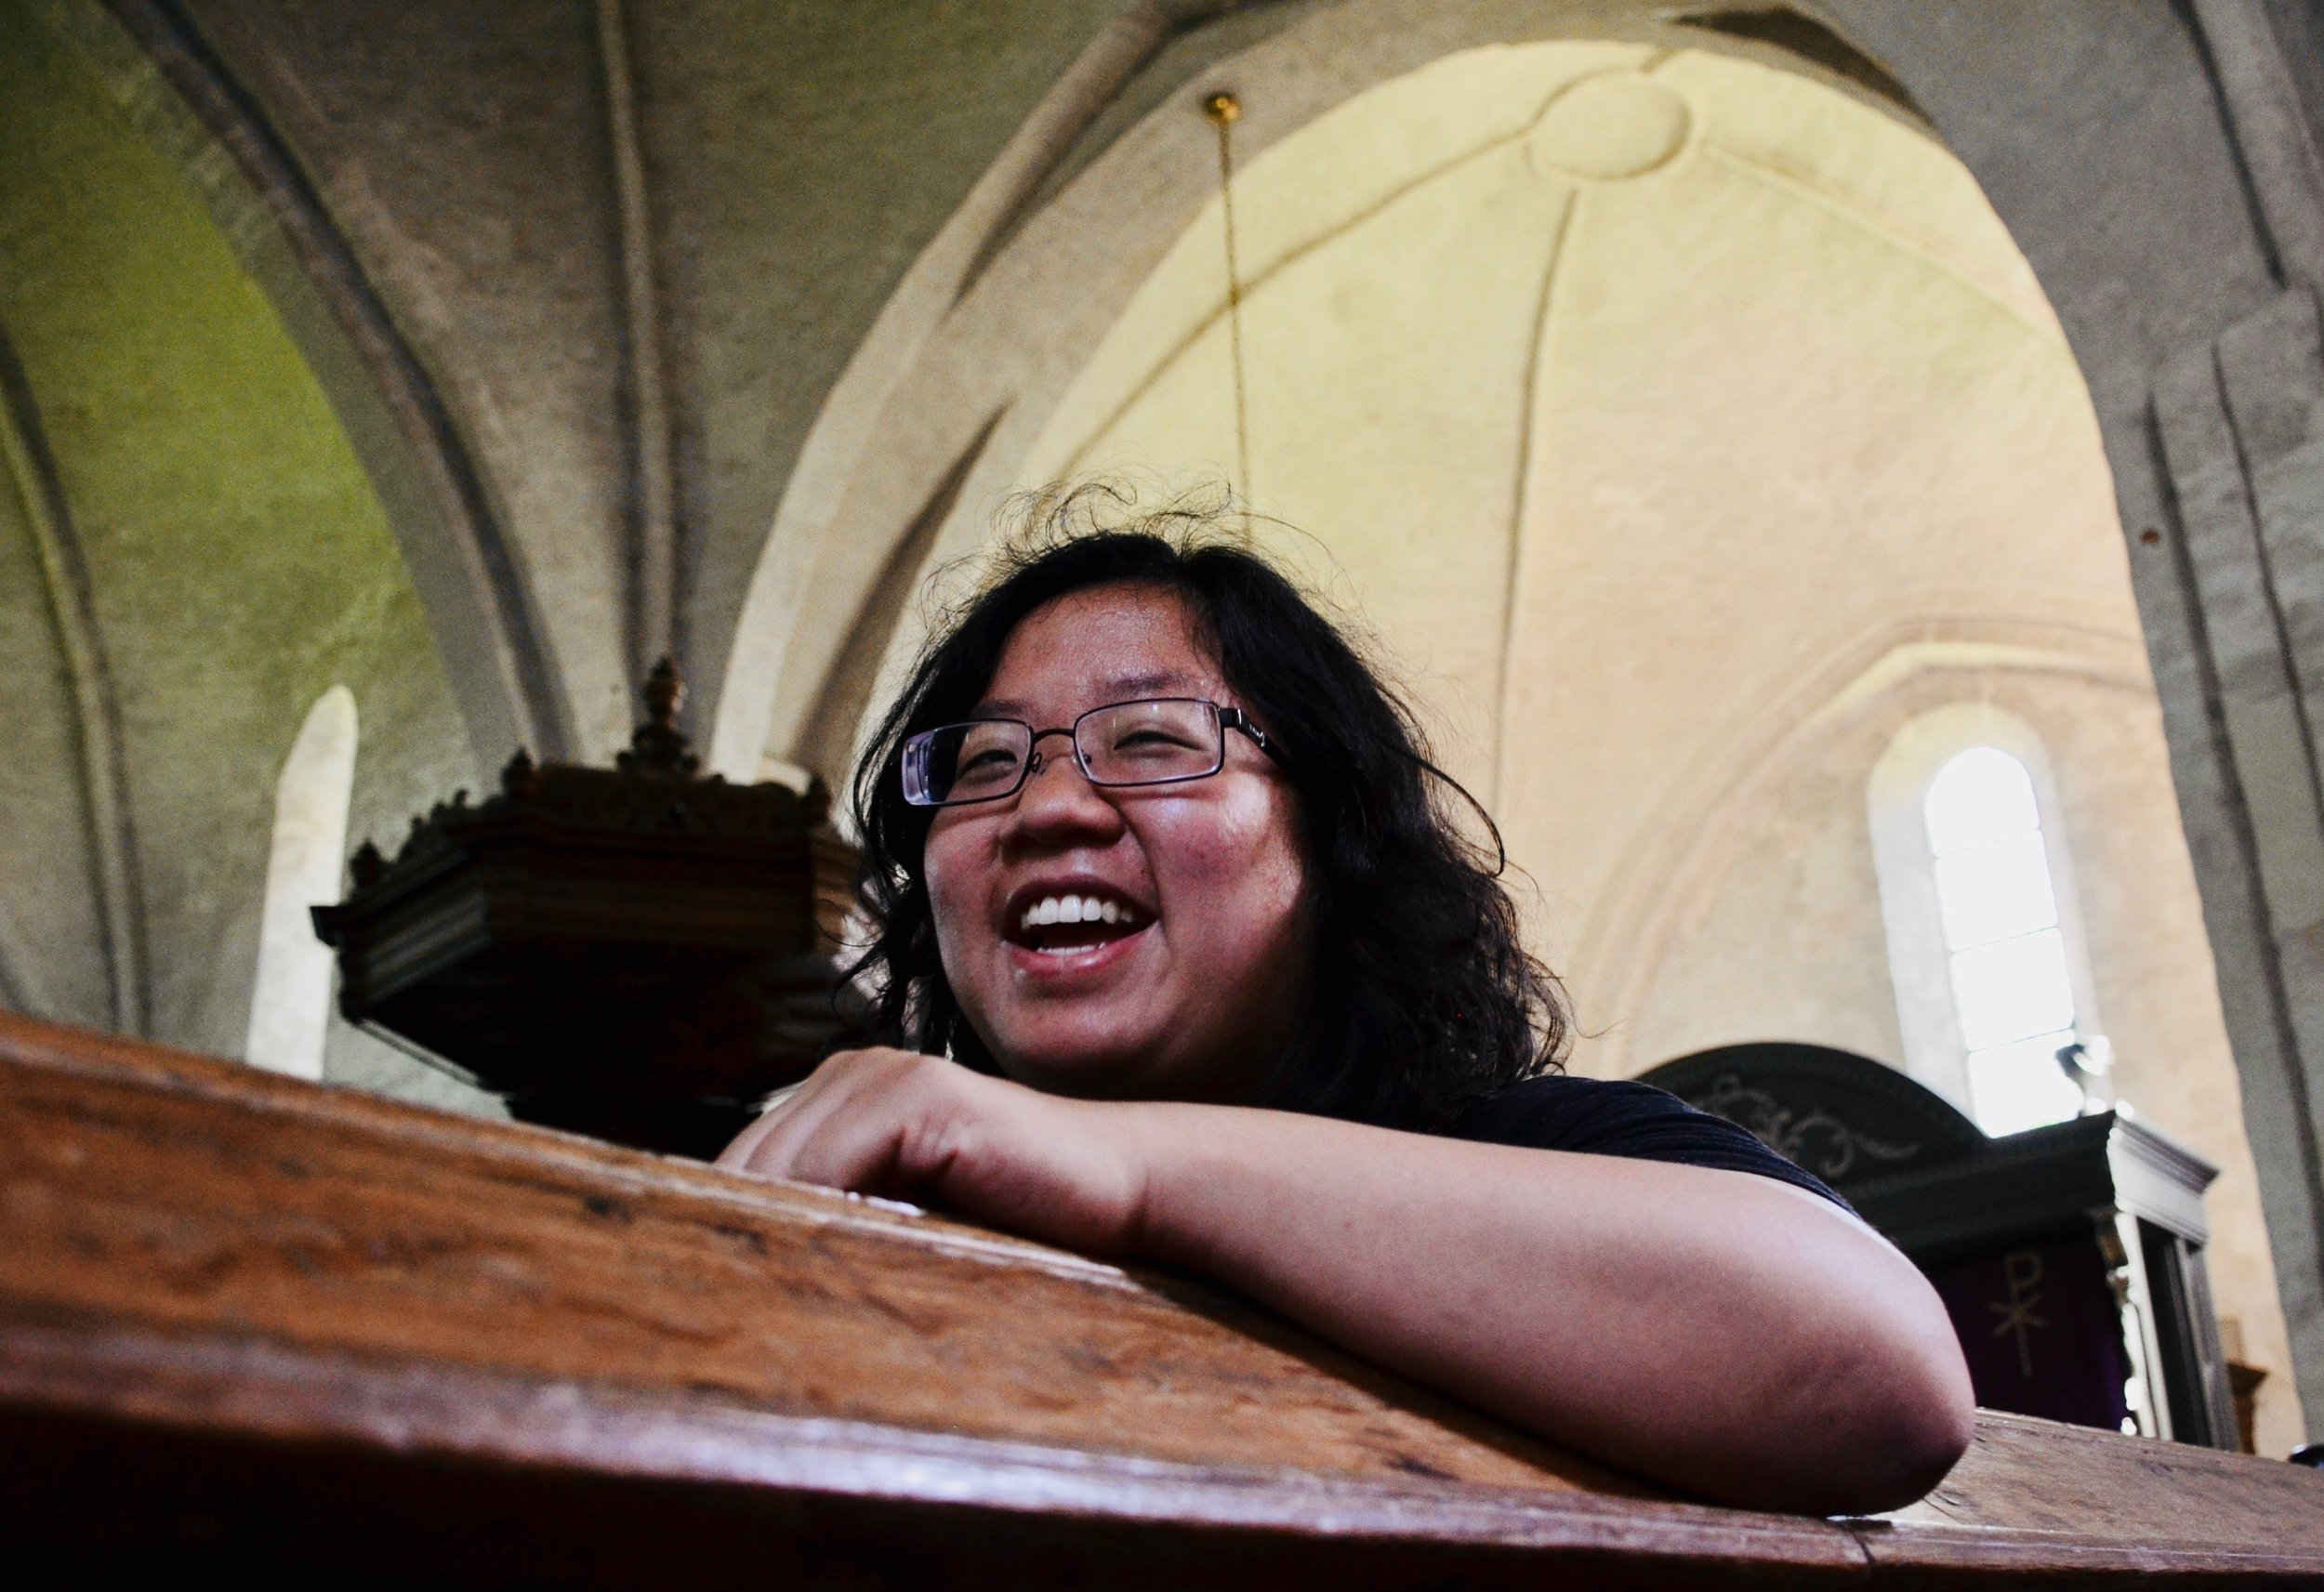 Jennifer Hsiao is all smiles listening to the 1733 Hinsz organ, Leens, Holland.